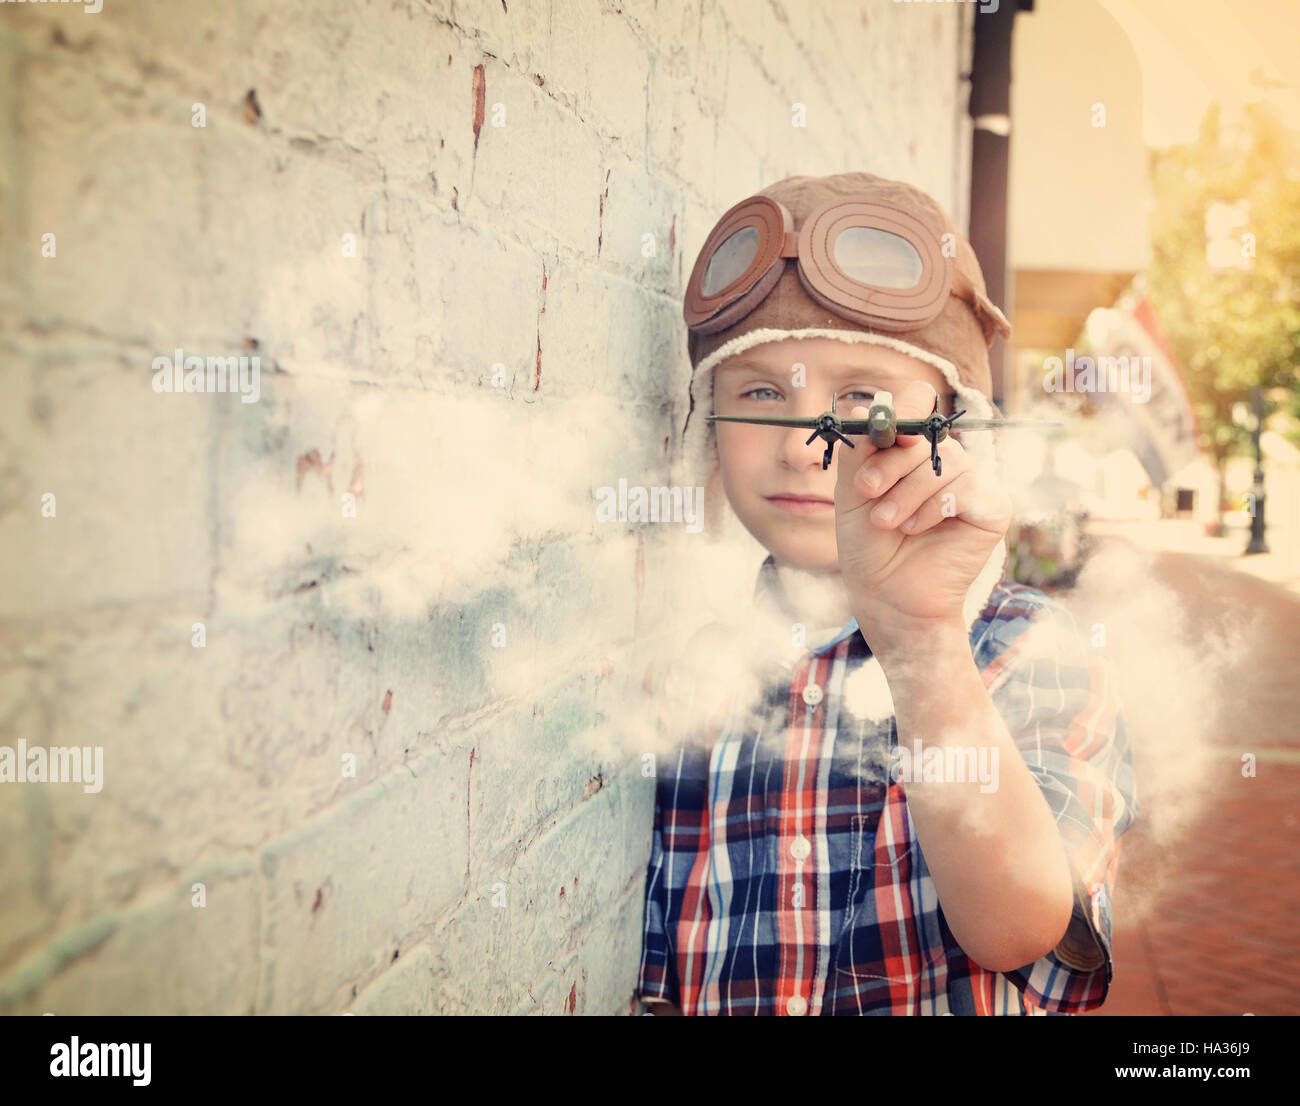 A young boy is pretending to be a pilot and playing with an airplane toy against a brick wall for a dream or career Stock Photo